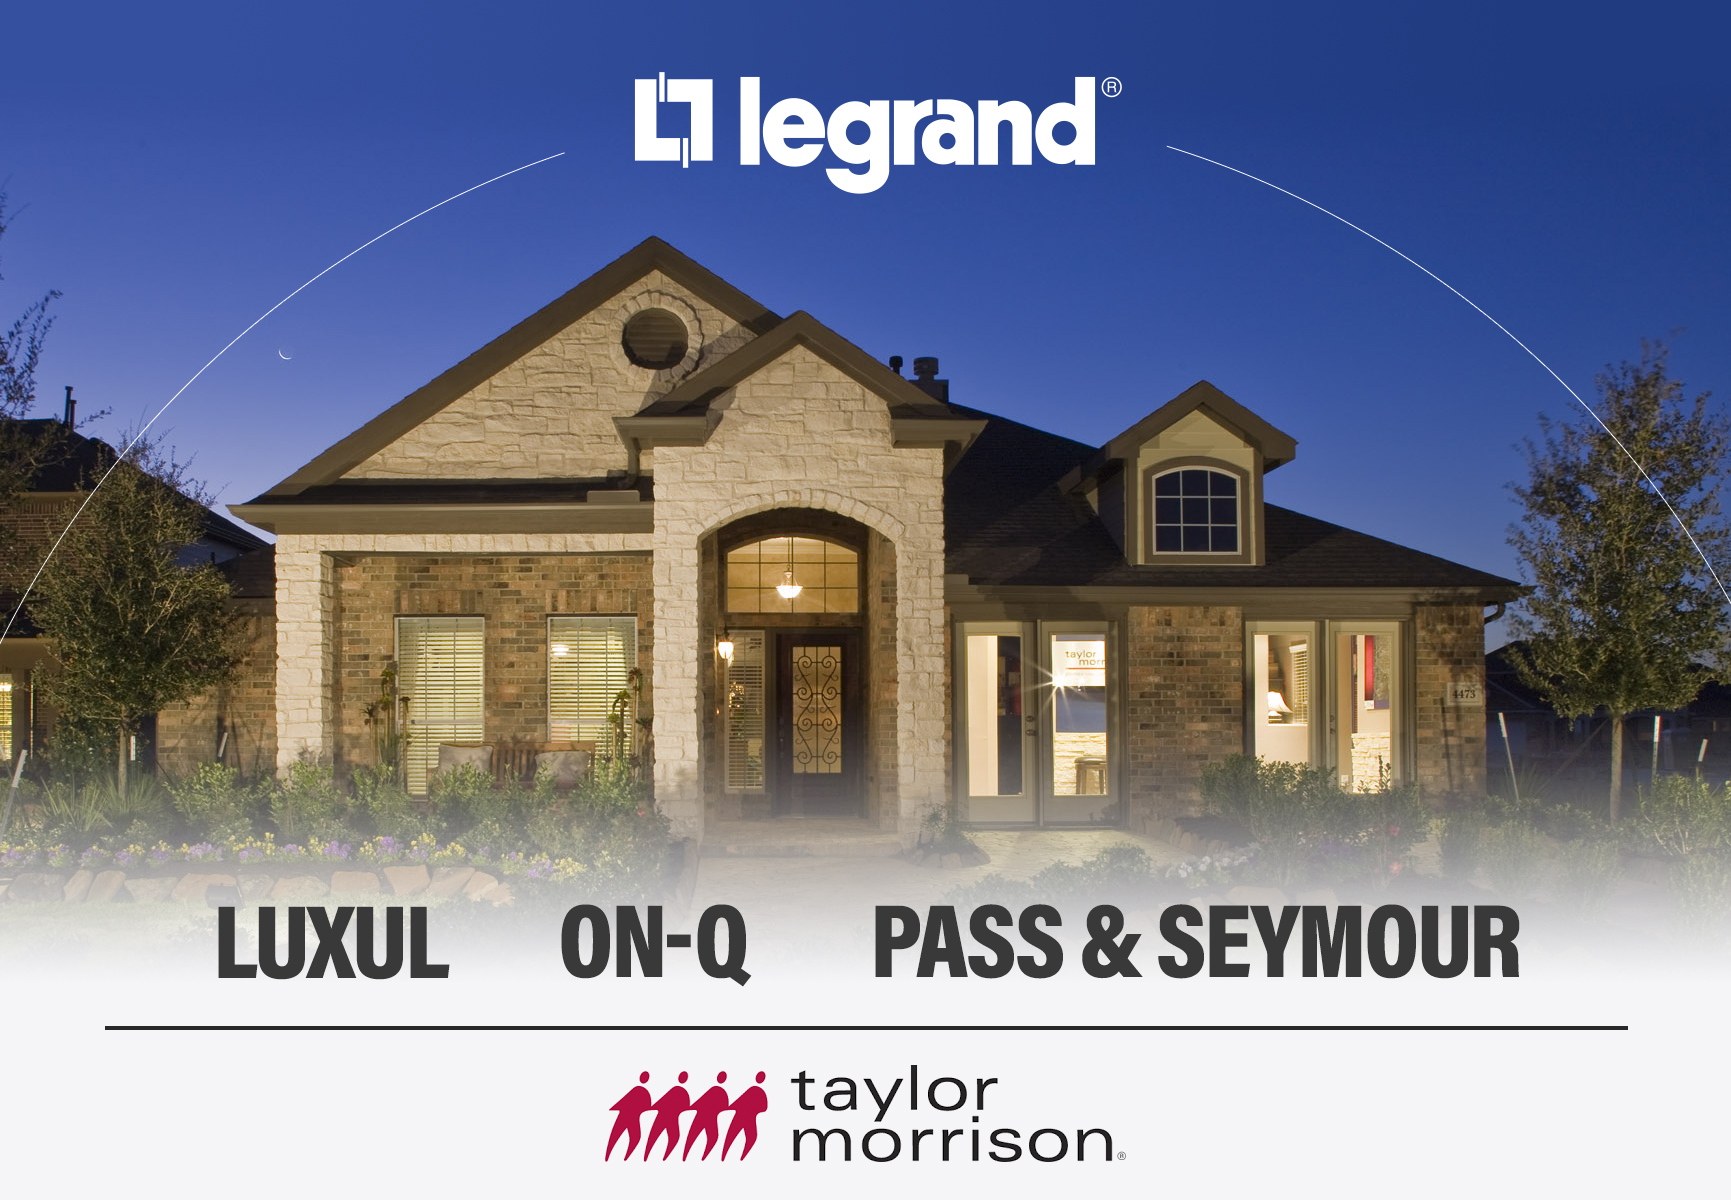 Legrand | AV has signed an agreement with nationwide homebuilder Taylor Morrison Homes for Luxul, On-Q, and Pass & Seymour brands.